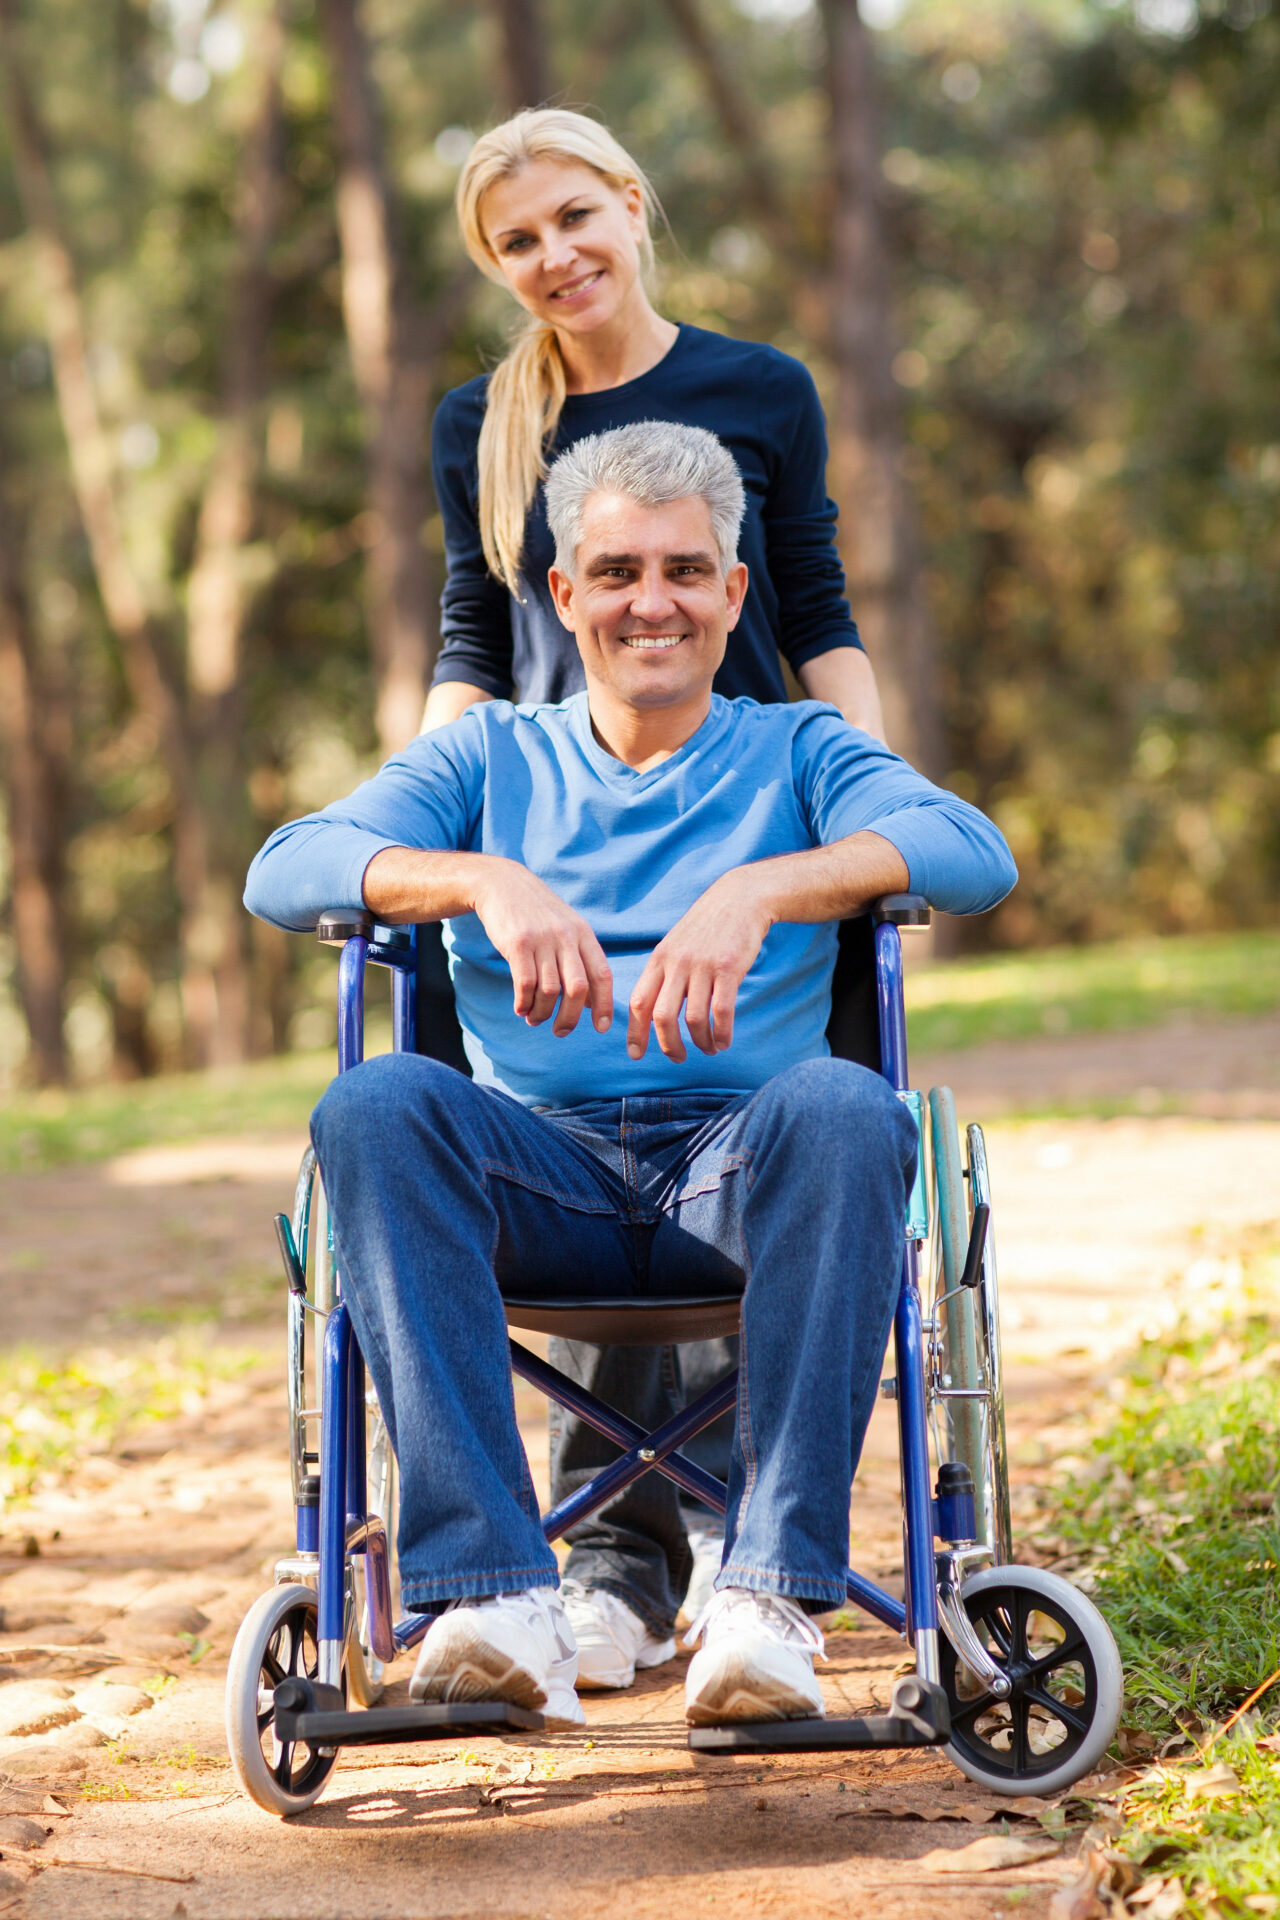 Do You Have a Temporary Injury? We have Rental Solutions